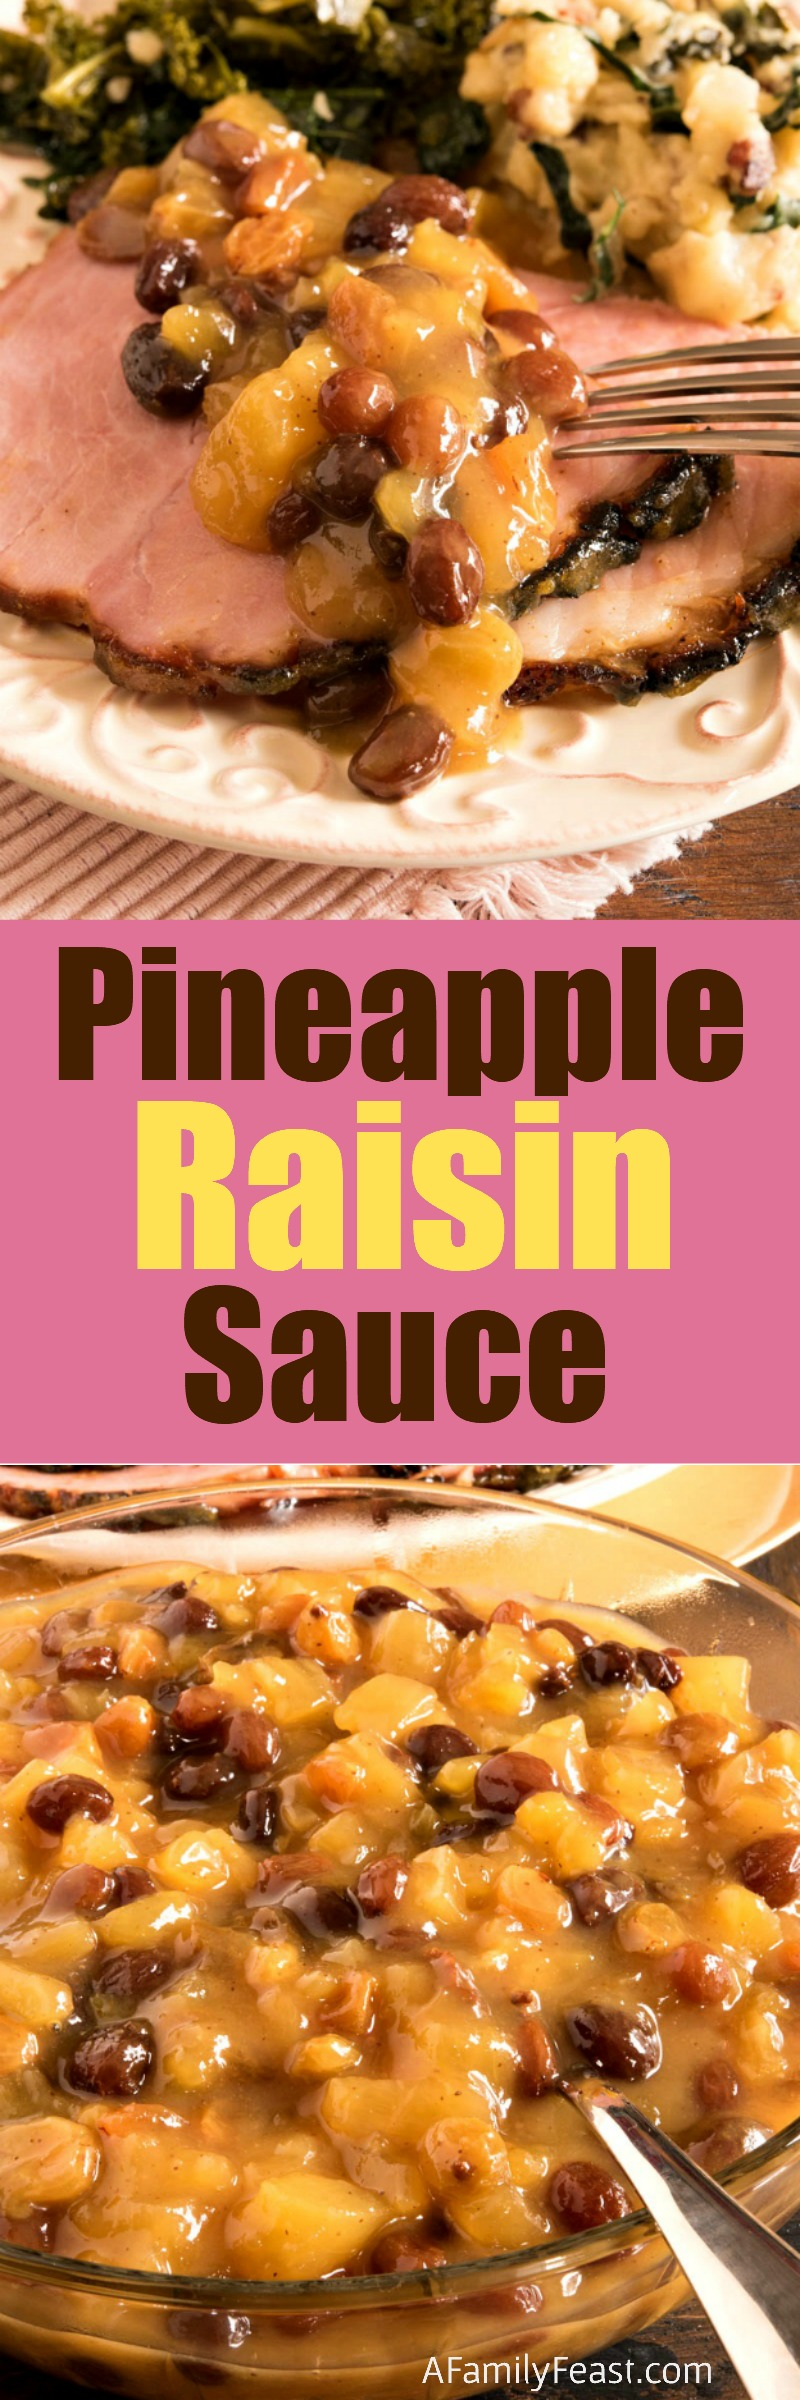 Pineapple Raisin Sauce - The perfect sauce for baked ham made from pineapple juice, crushed pineapple, raisins and Dijon mustard.